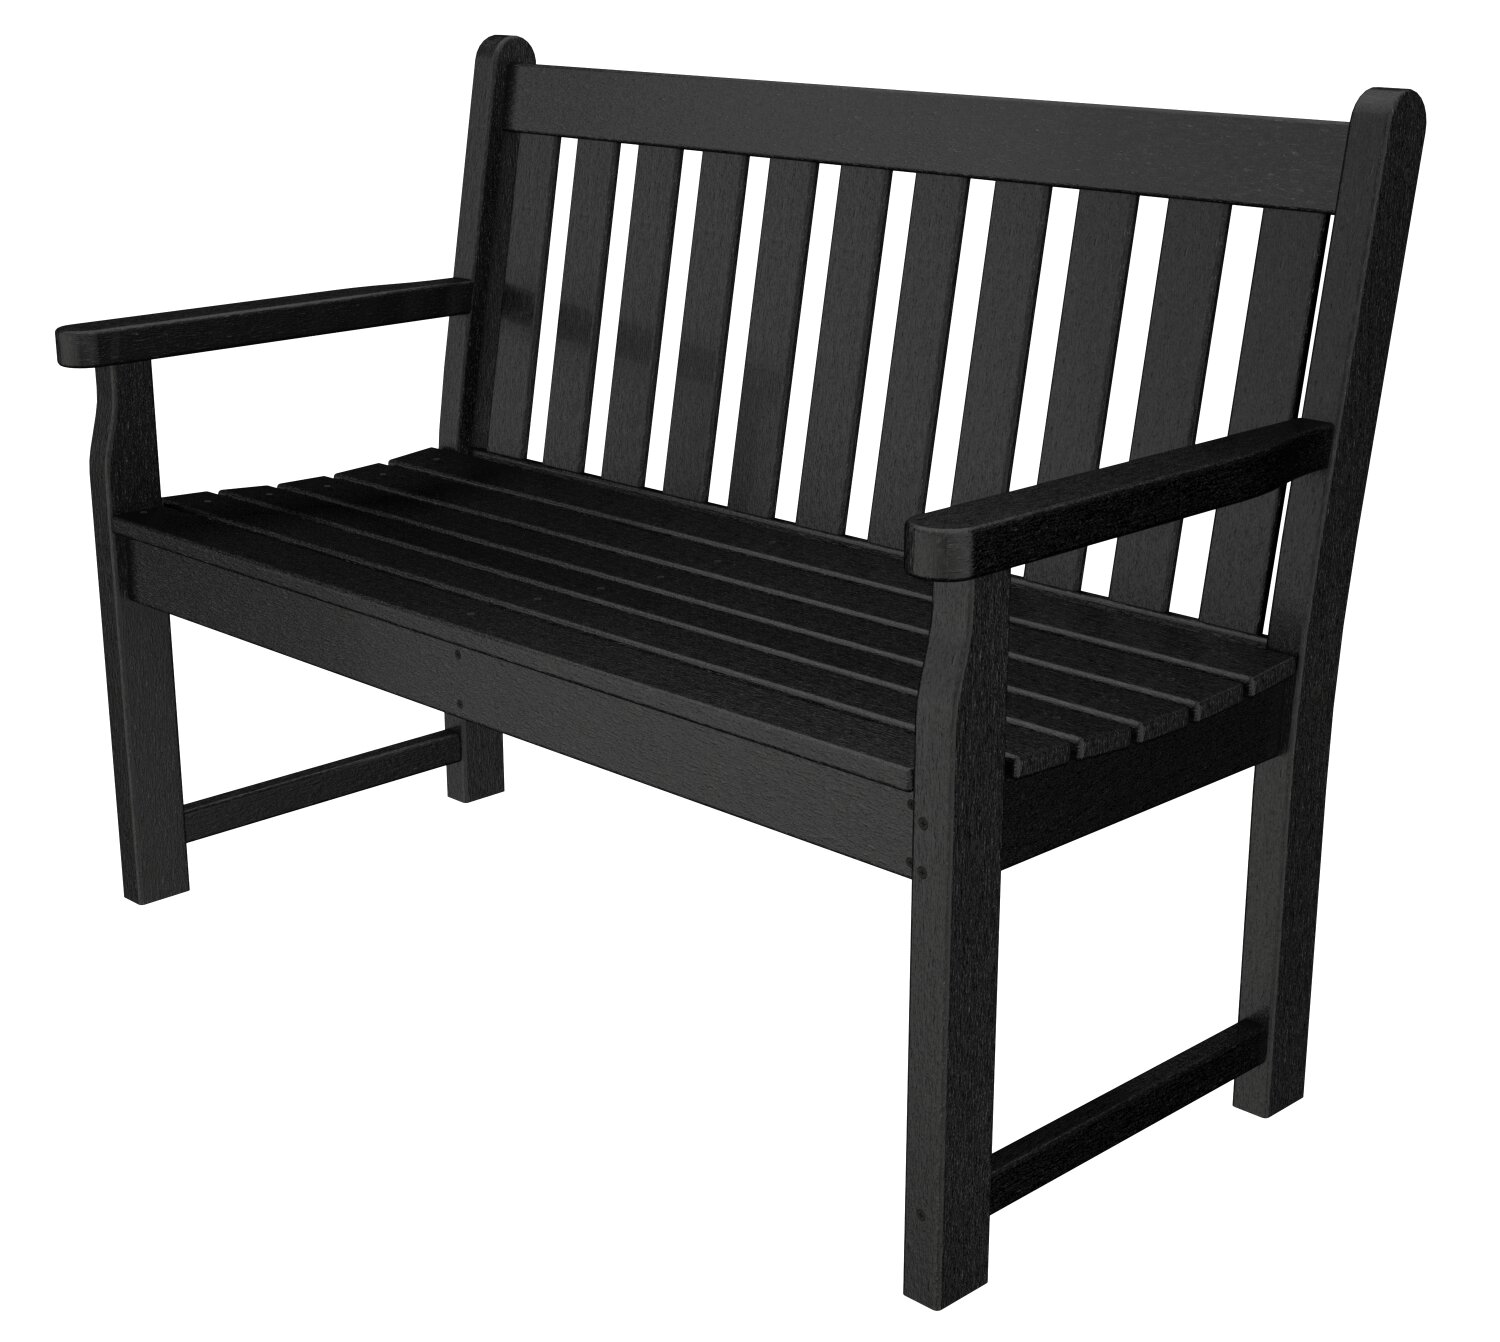 of design benches holder extra ae bins dining lustwithalaugh bench gray very cushion boxes plastic popular deck exterior build lawn wooden poolside backyard garden patio wicker black sale full large seater outdoor toy box white storage for furniture chair chest with size